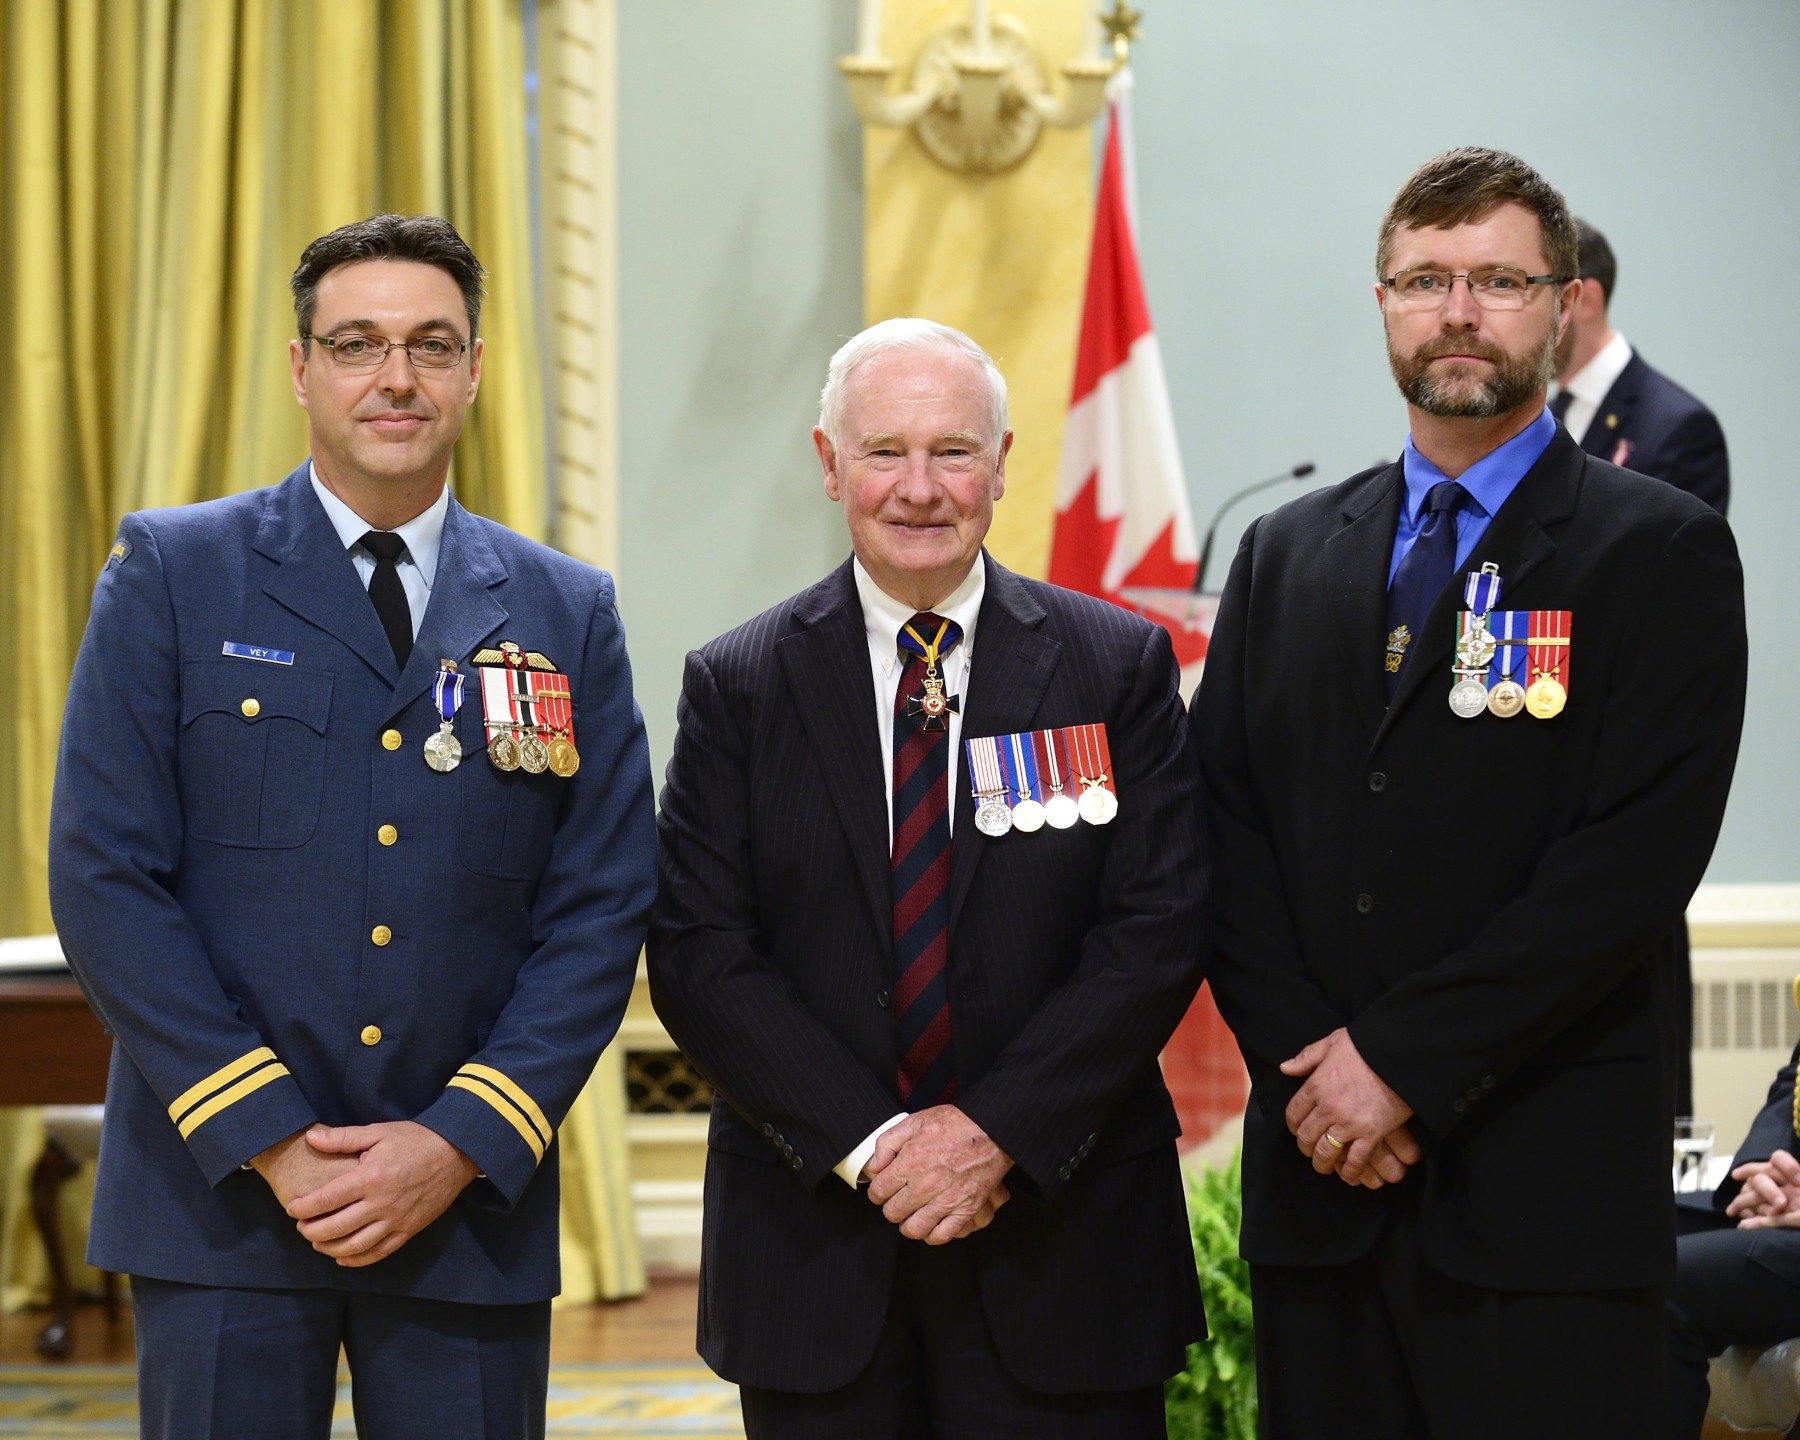 On October 27, 2011, Sergeant Bradley Douglas Hiscock, M.S.M., C.D. (Grand Falls, Newfoundland and Labrador) and Captain Dean Harvey Vey, M.S.M., C.D. (Labrador City, Newfoundland and Labrador) were respectively the flight engineer and the first officer onboard Rescue 915, a Cormorant helicopter, when they were tasked to rescue two hunters stranded in the Arctic waters near Igloolik, Nunavut. Facing high winds and rough seas, Sergeant Hiscock skilfully operated the hoist, while Captain Vey used his expert flying skills to recover the two hunters, as well as three search and rescue technicians who had previously parachuted in to assist them. Through their commendable efforts and actions, Sergeant Hiscock and Captain Vey contributed to the mission success, and brought great credit to the Canadian Armed Forces.